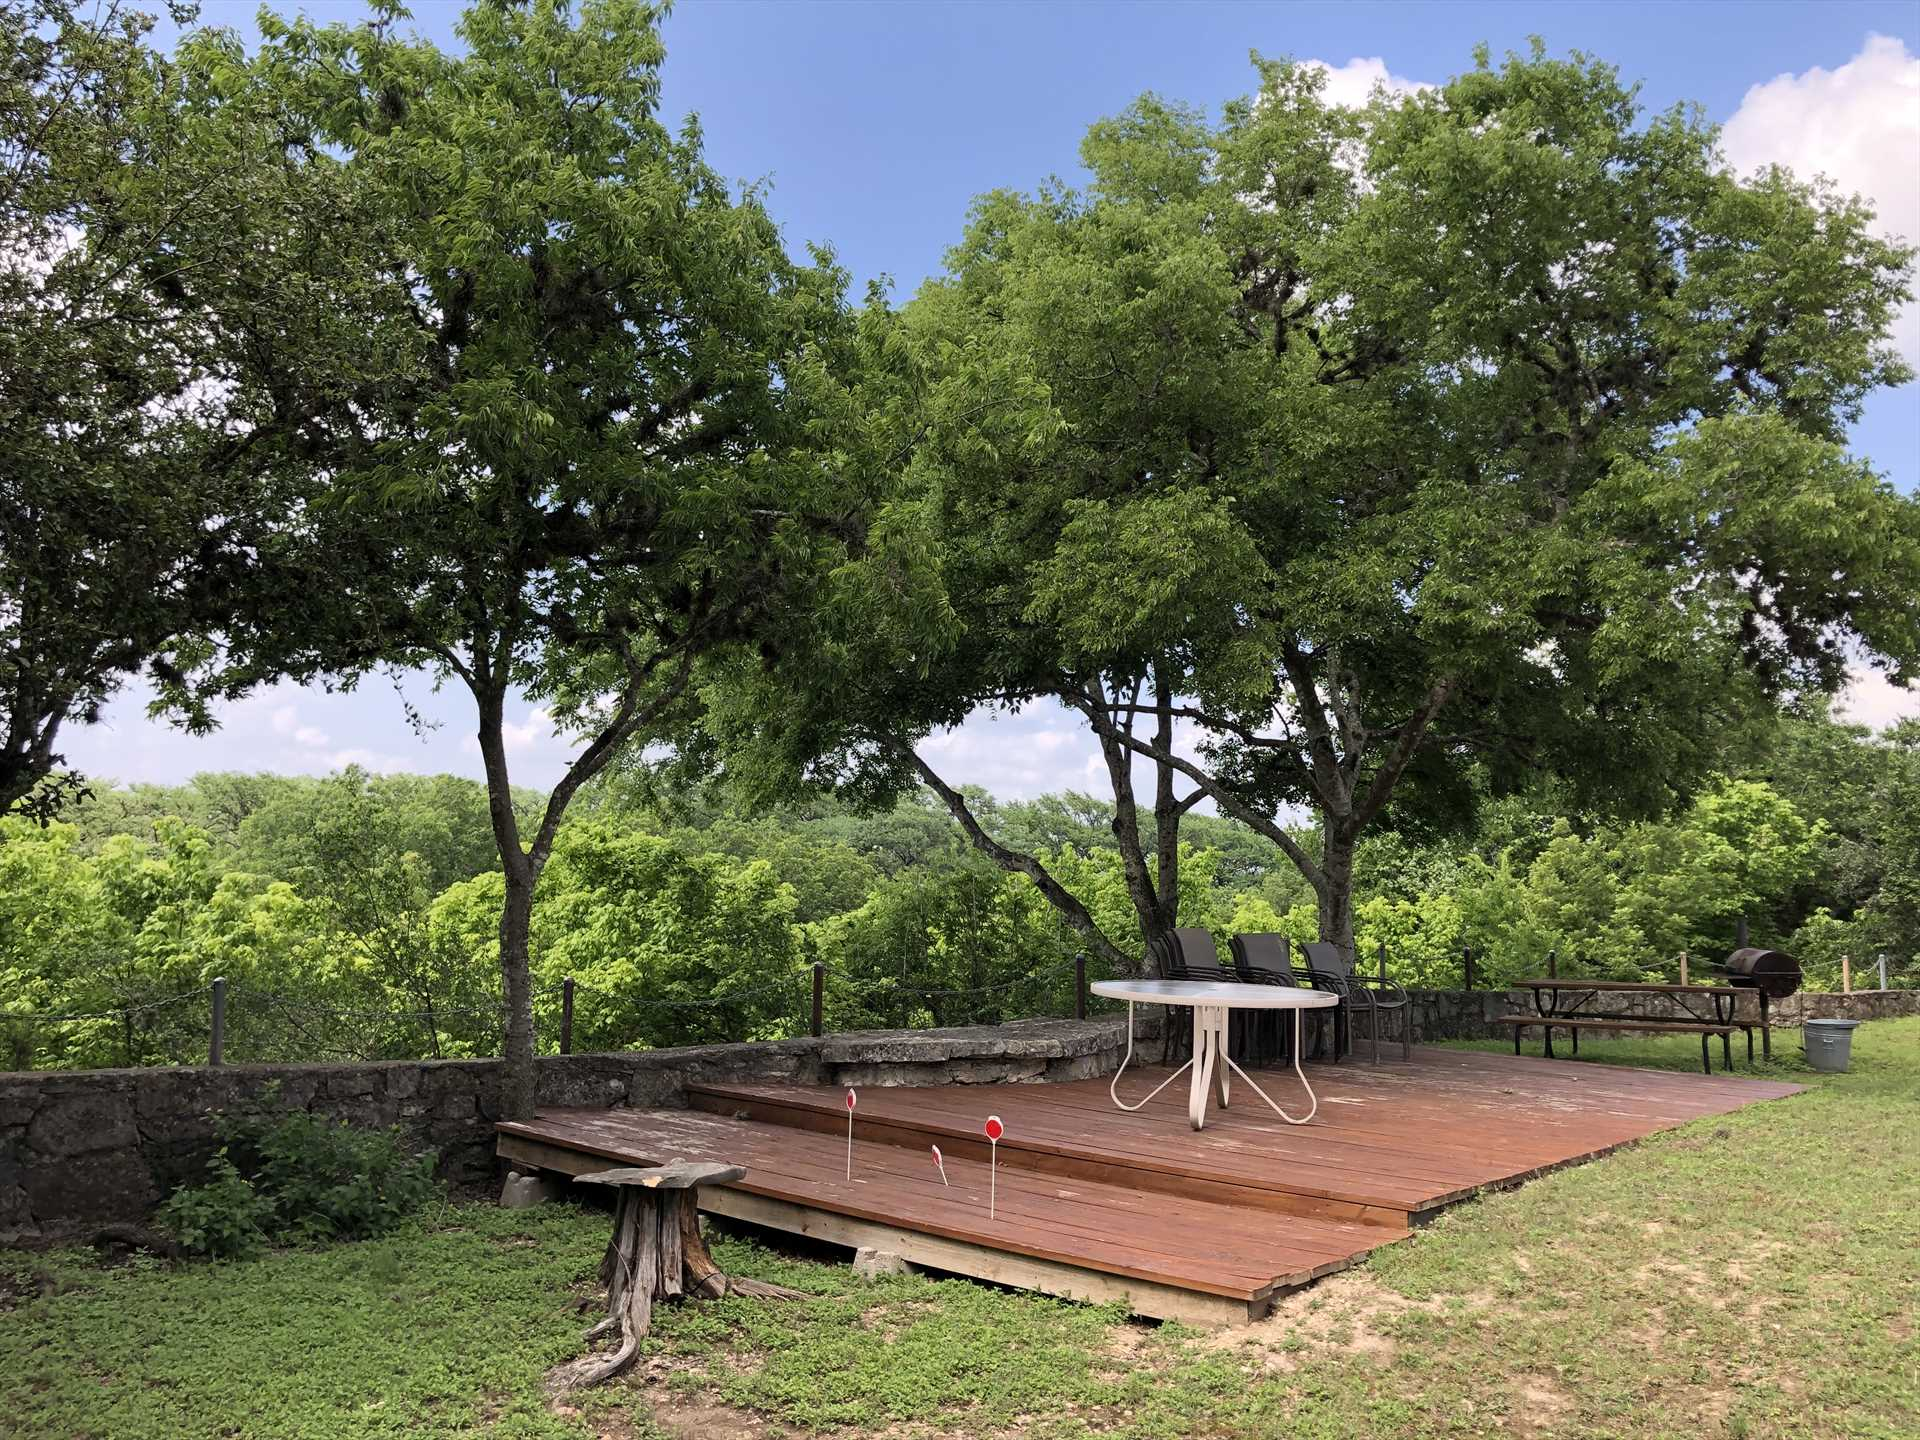 This shady patio offers a bird's-eye view of the Hill Country, its wildlife, and the expansive Texas skies.